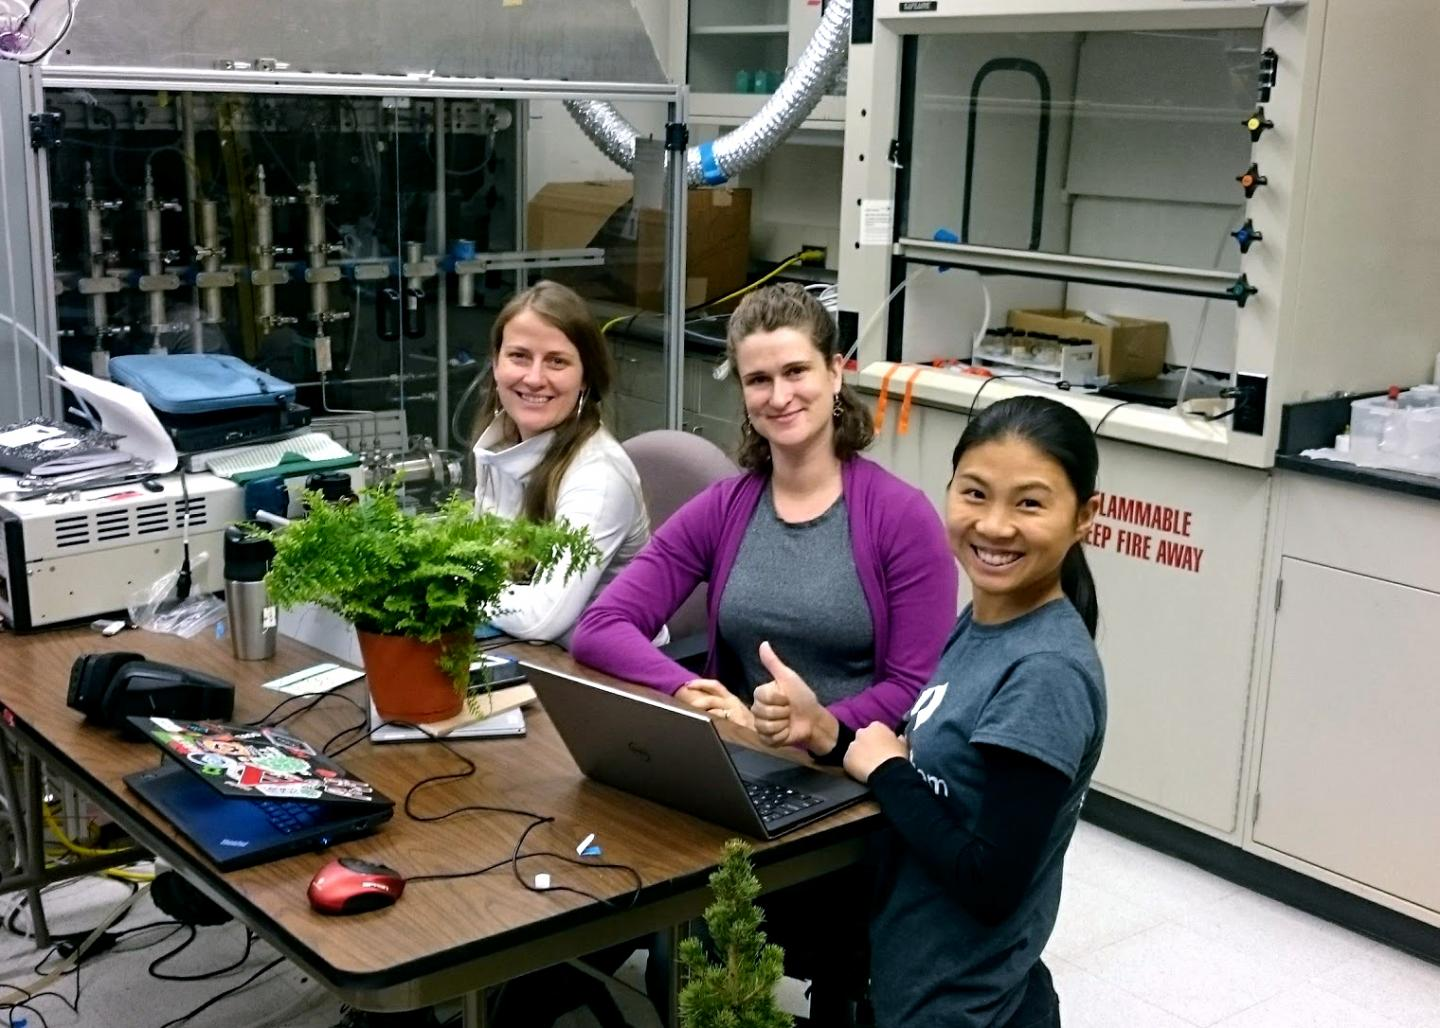 USask-led research team measures air quality in a simulated room in a lab at Syracuse University in 2017.